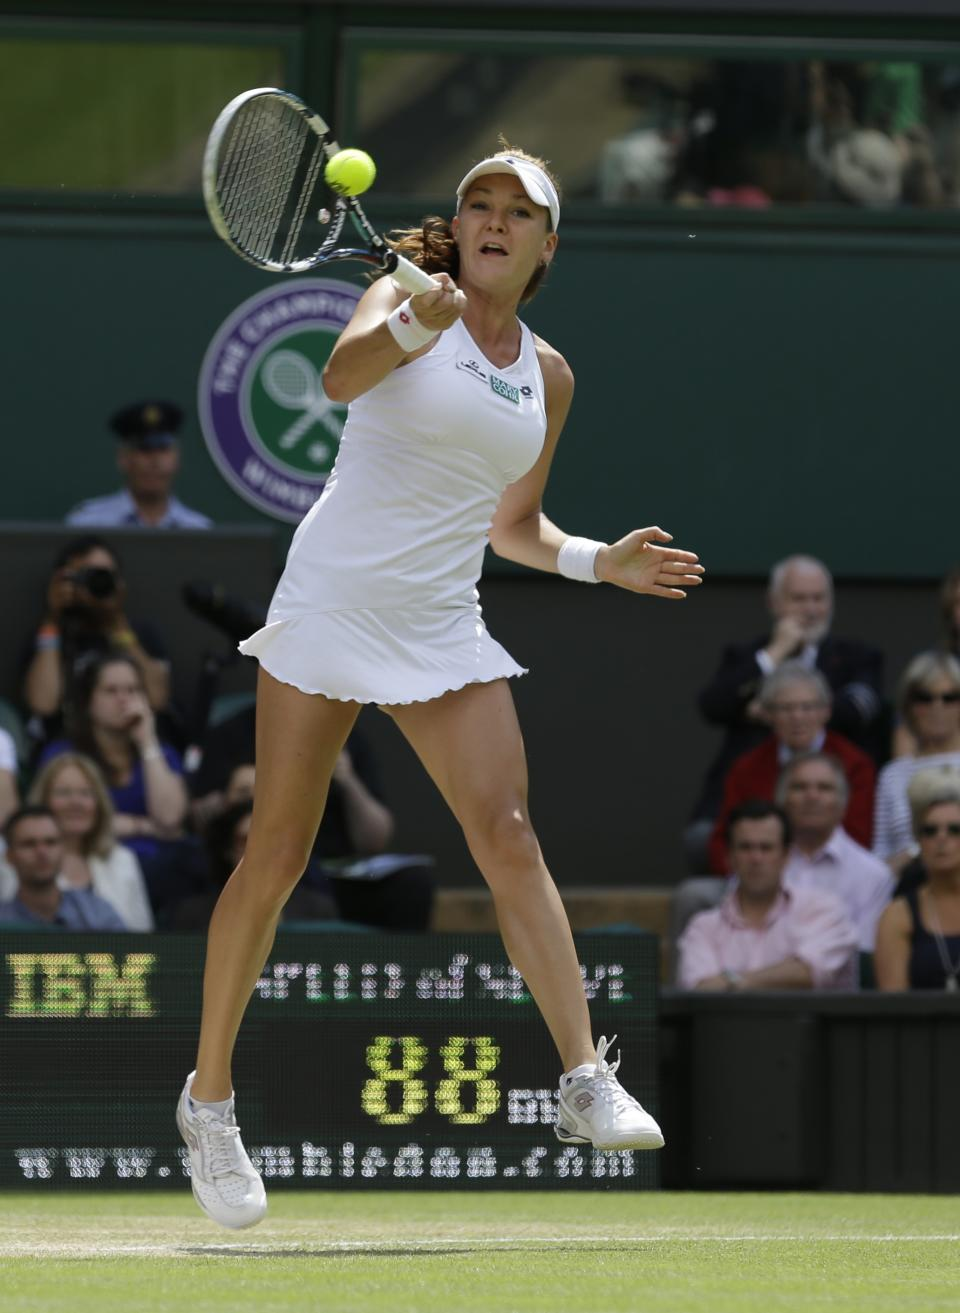 Agnieszka Radwanska of Poland plays a shot to Angelique Kerber of Germany during a semifinals match at the All England Lawn Tennis Championships at Wimbledon, England, Thursday, July 5, 2012. (AP Photo/Anja Niedringhaus)